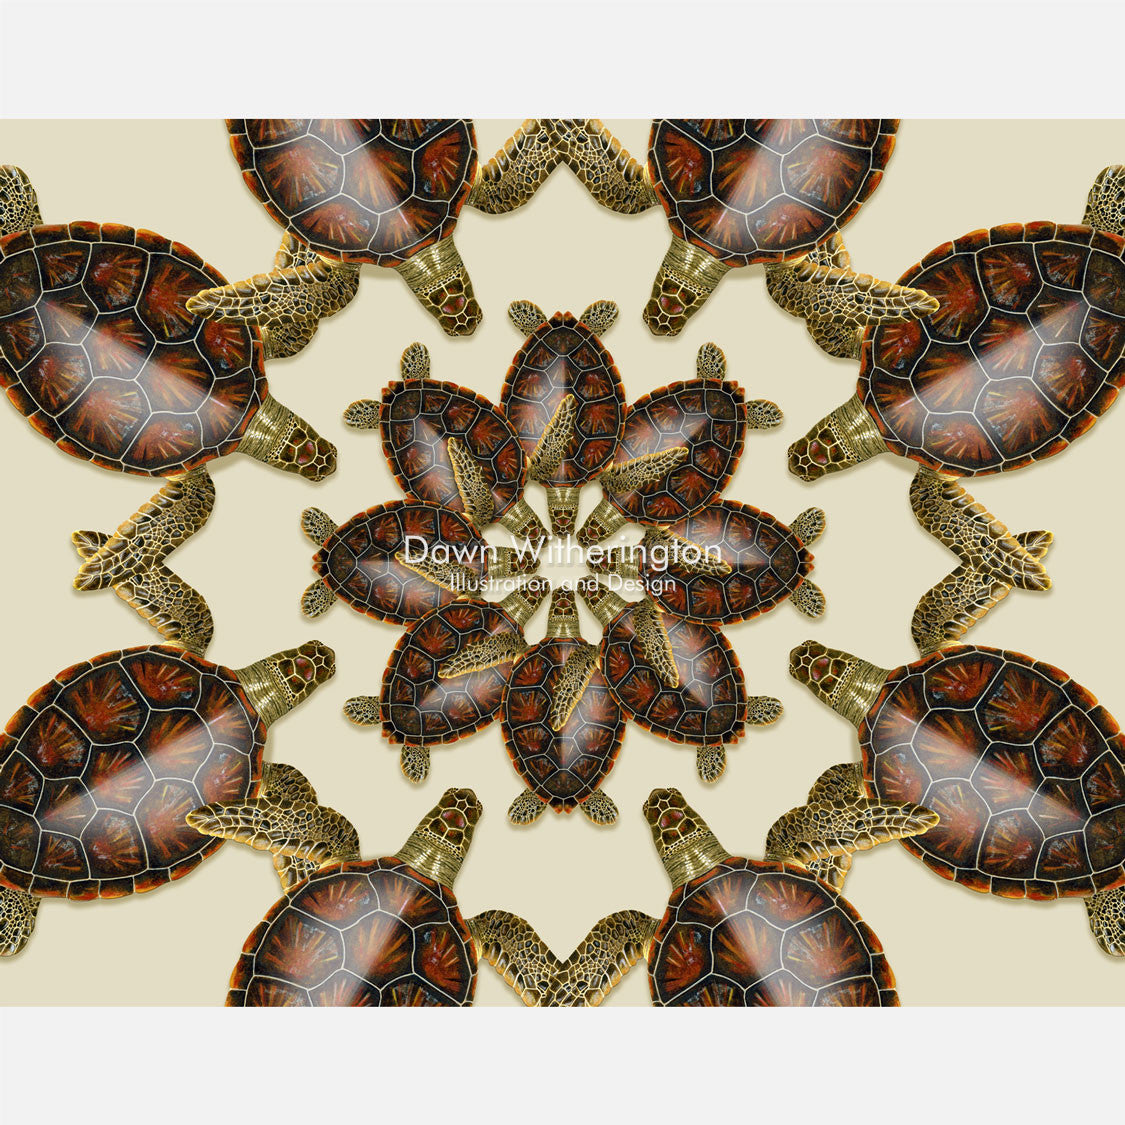 This beautiful design is of a kaleidoscopic graphic of juvenile green turtles, Chelonia midas.